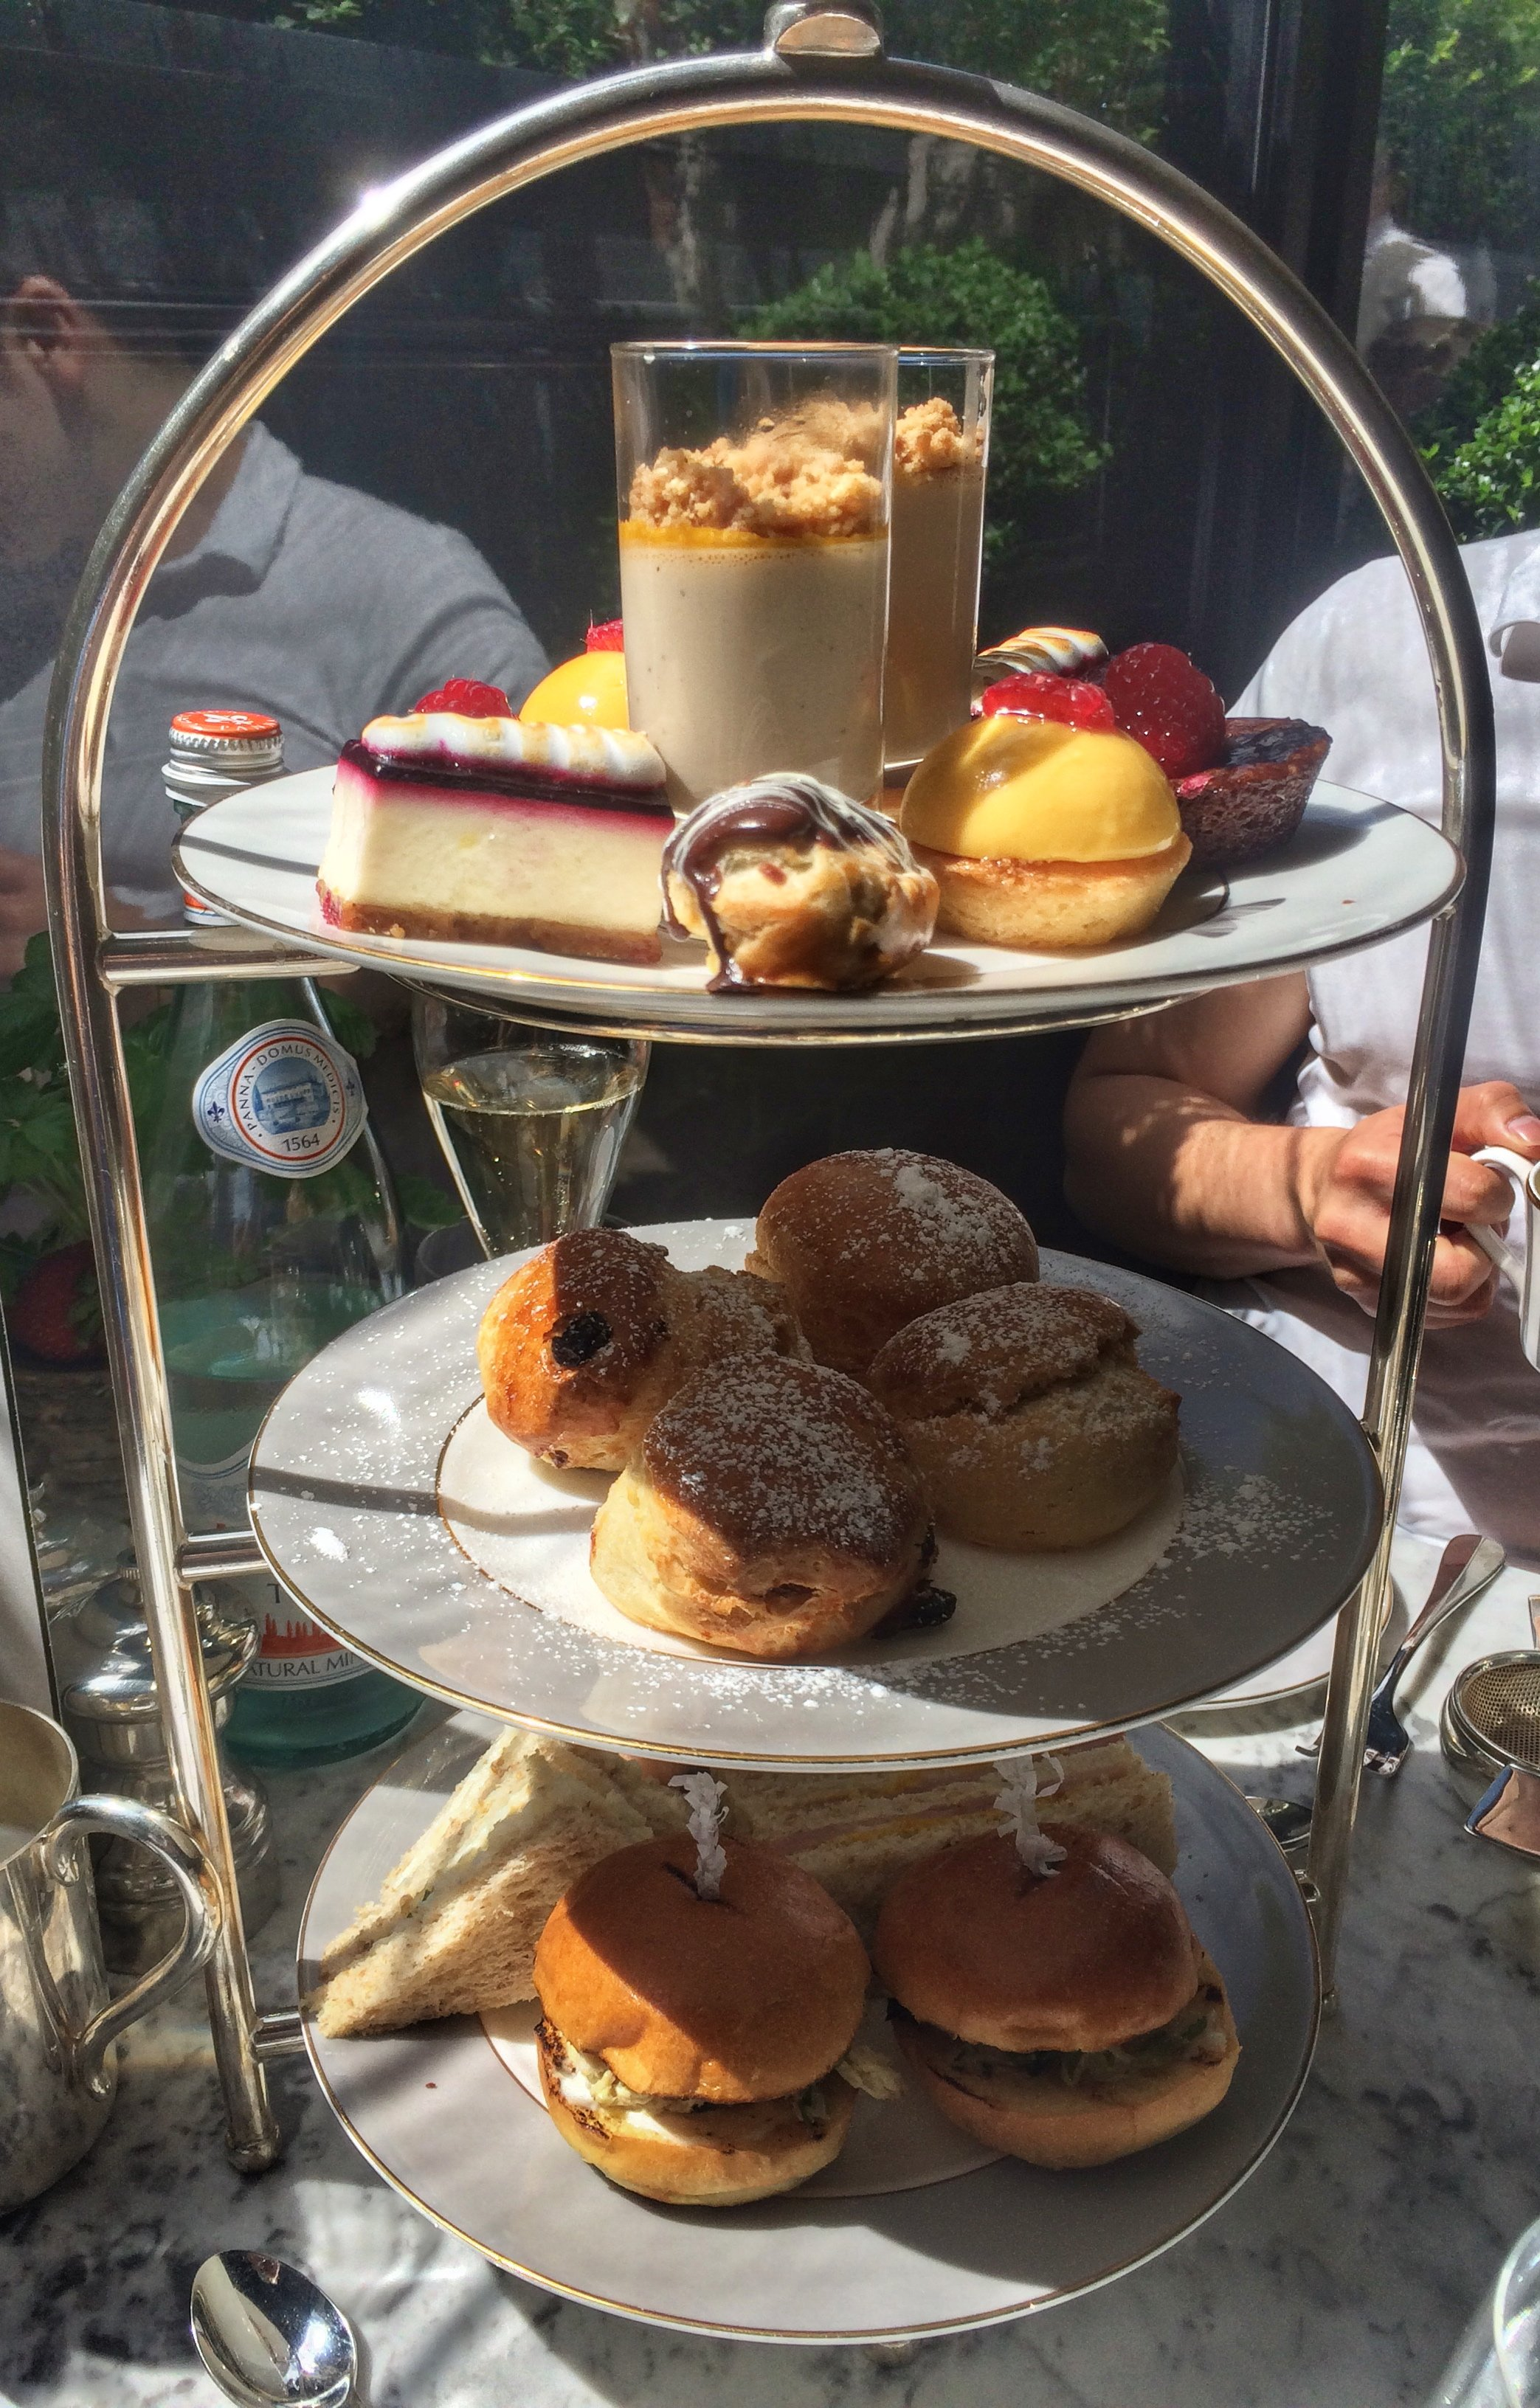 Dalloway Terrace Afternoon Tea